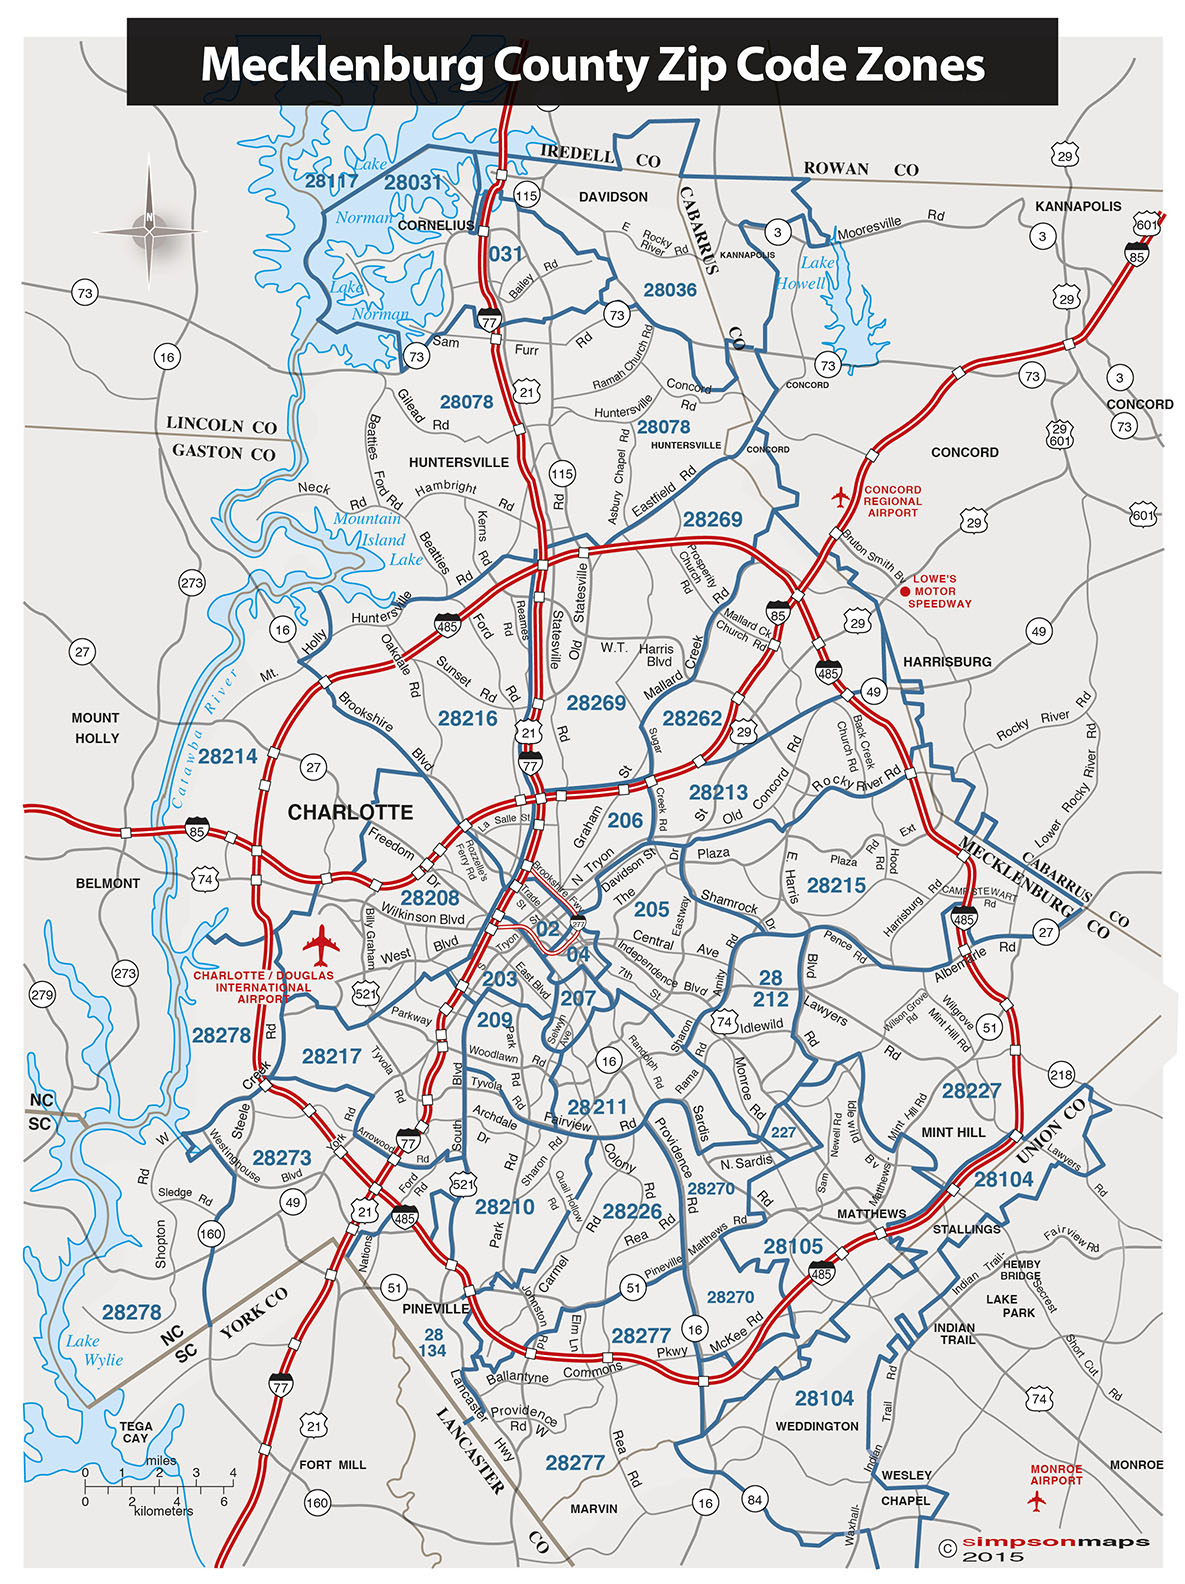 Charlotte Nc Zip Code Boundary Map, Click Here For A Zip Code Zones Map Jpg, Charlotte Nc Zip Code Boundary Map